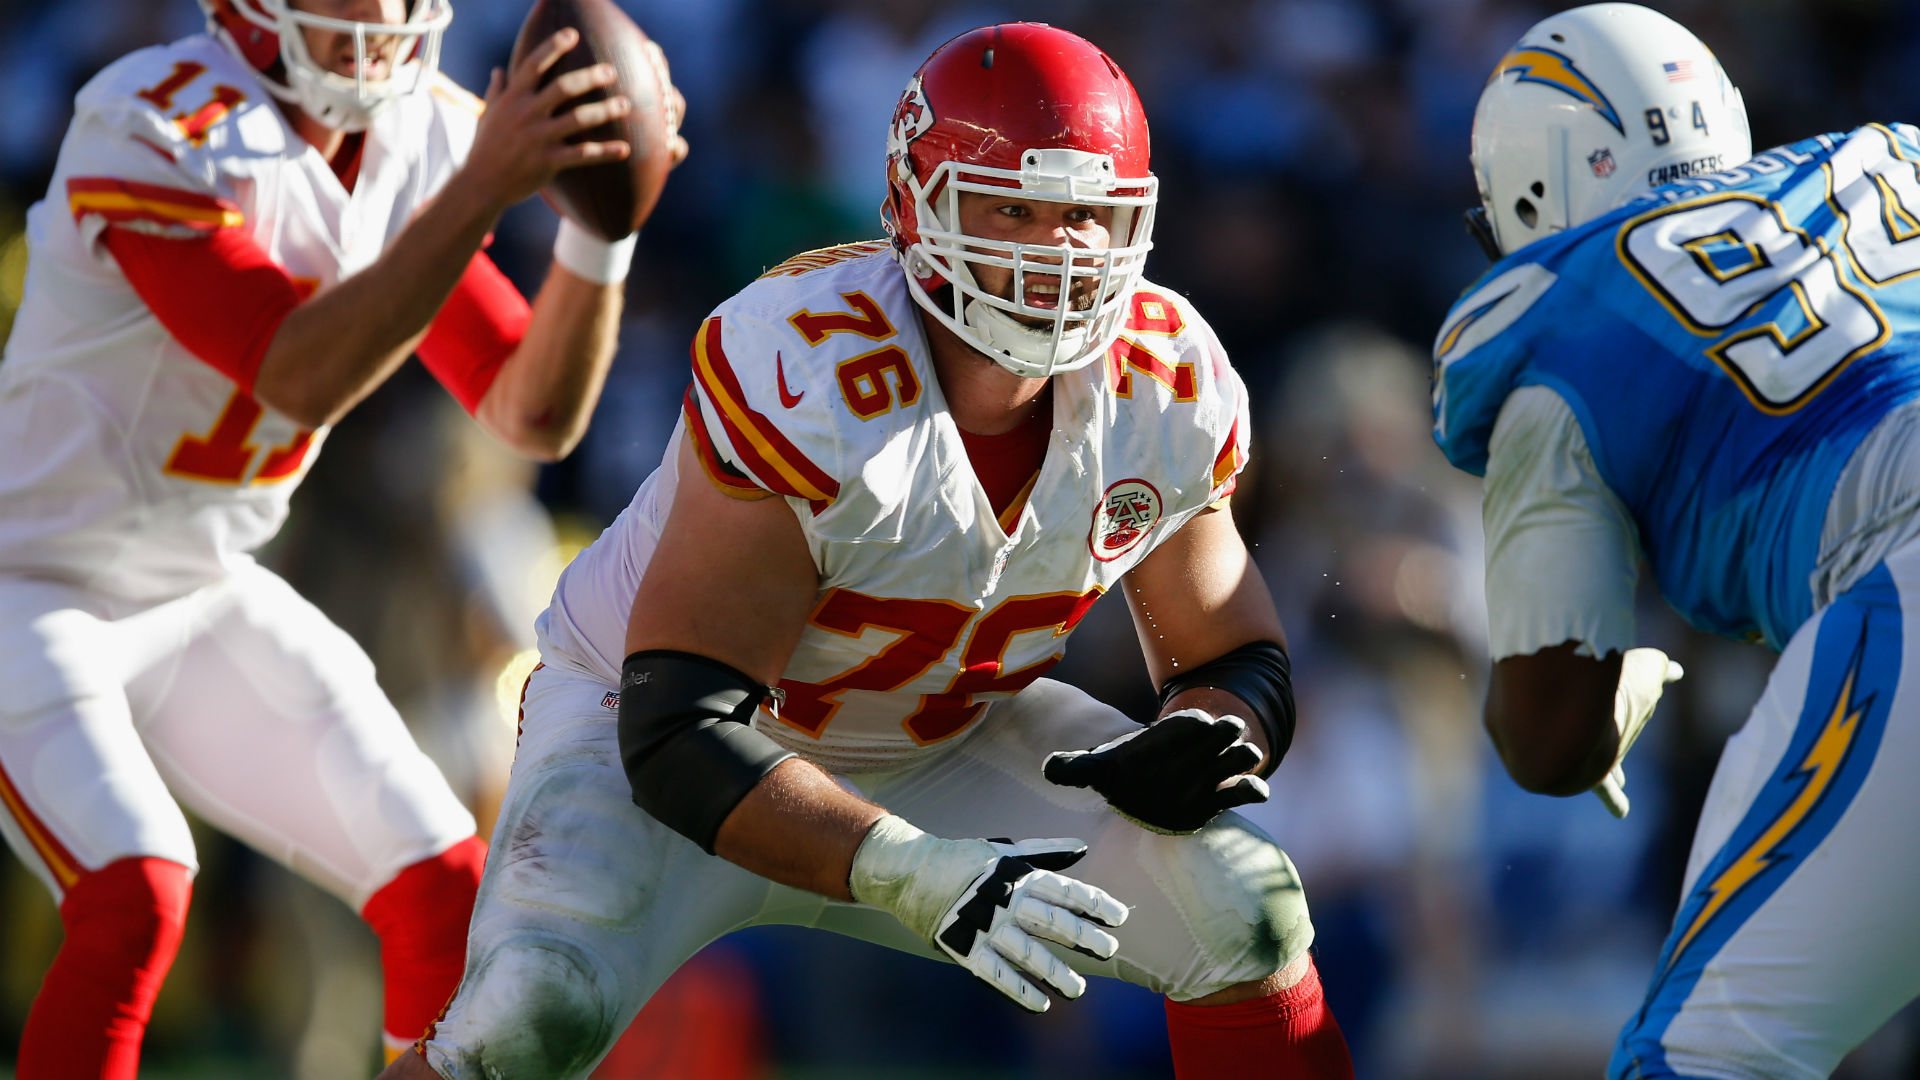 Chiefs lineman Laurent Duvernay-Tardif moonlights as journalist at Winter Olympics